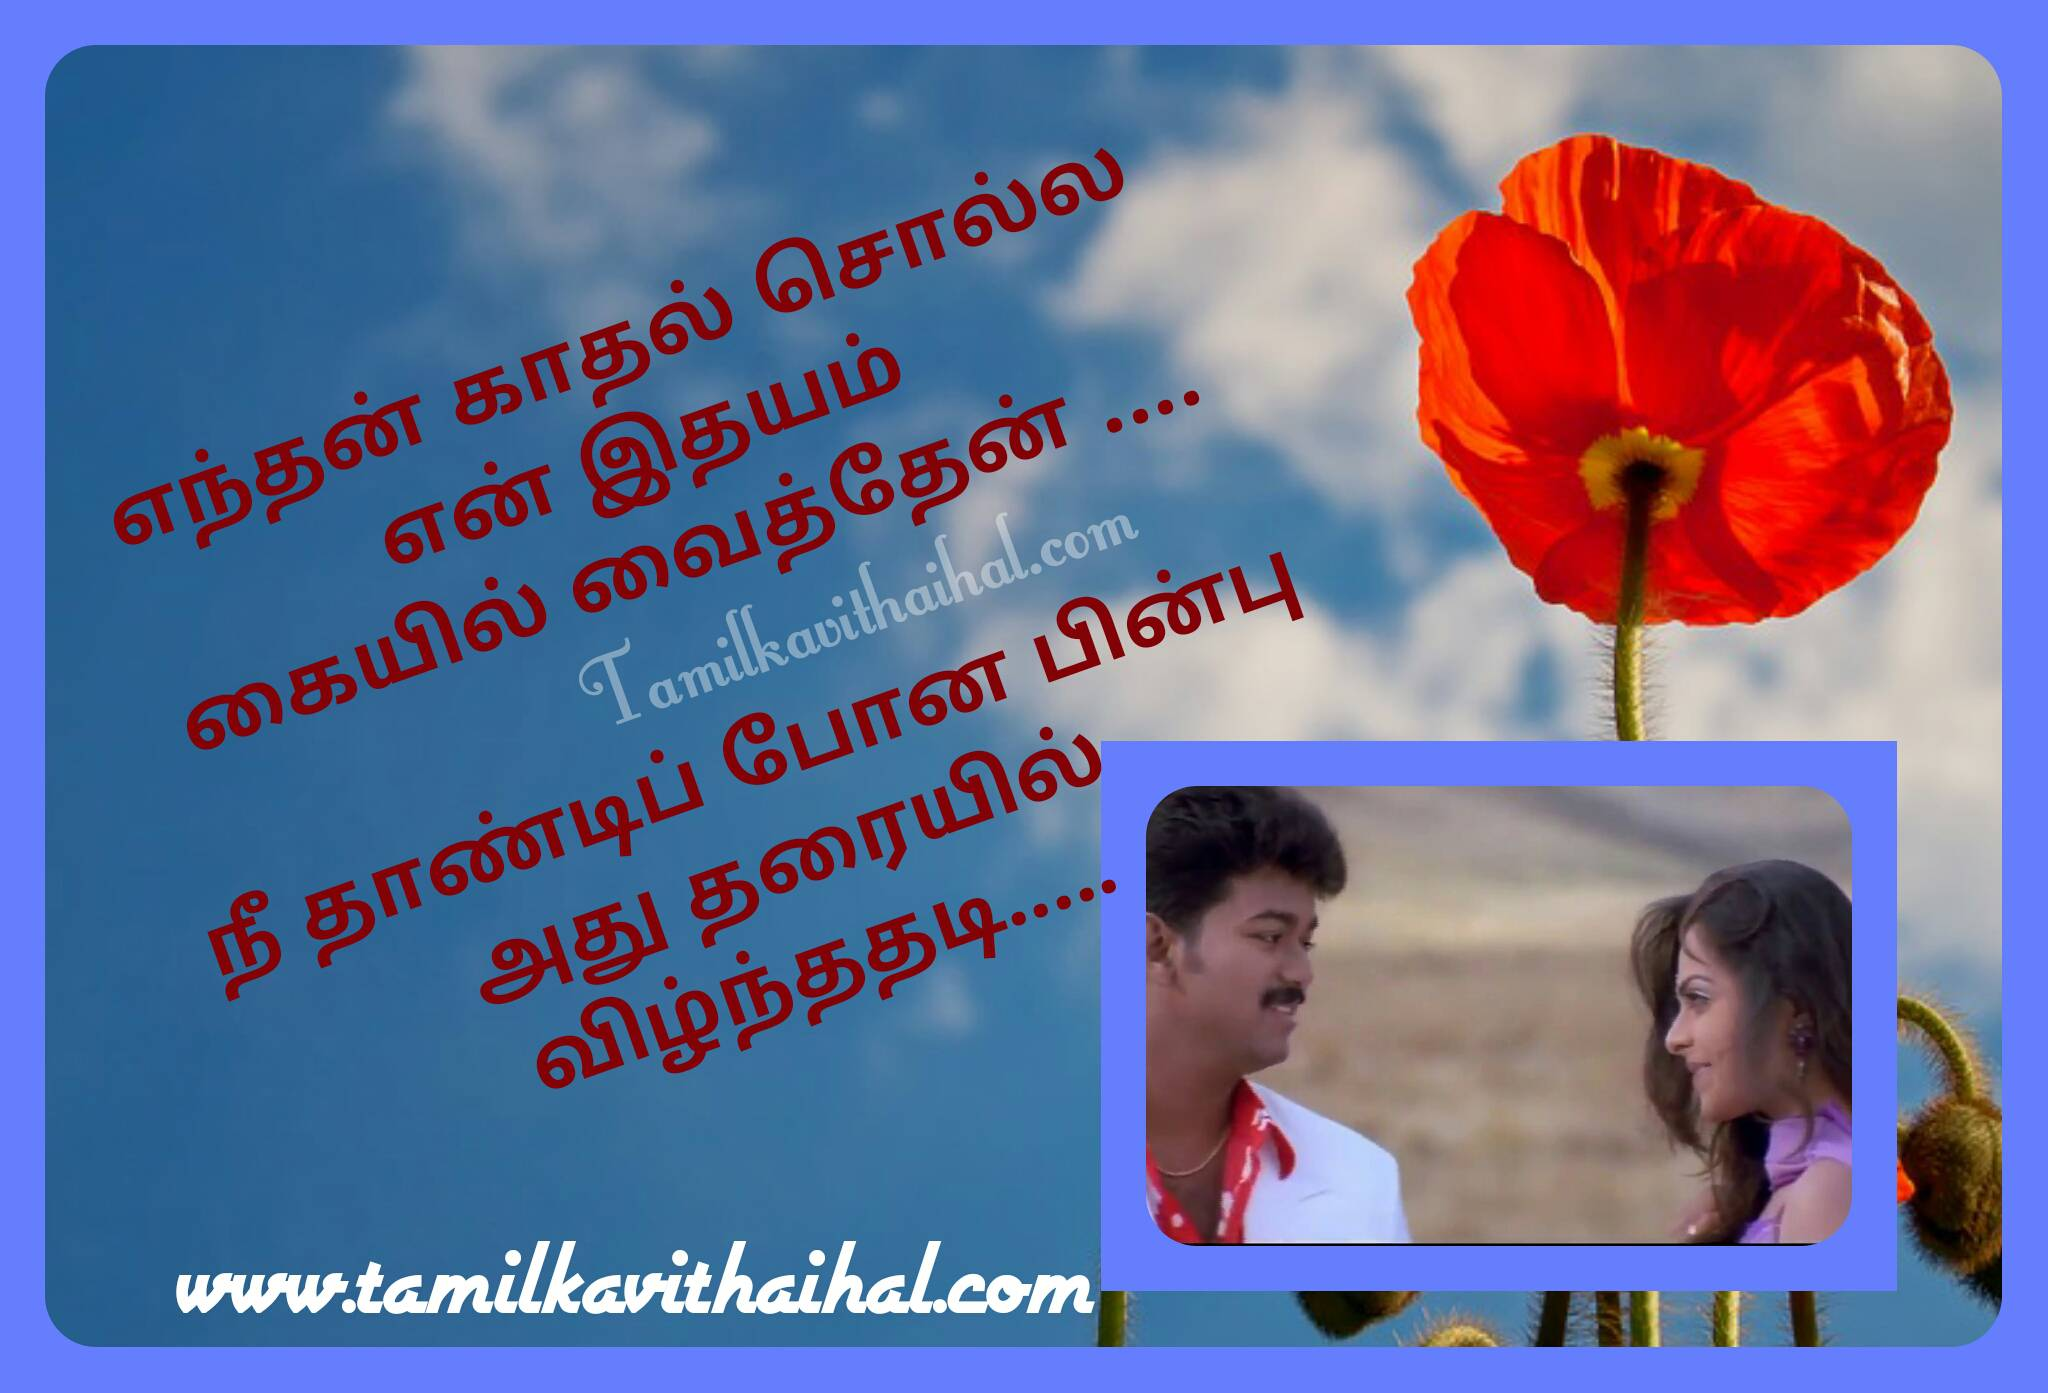 Wonderful Wallpaper Love Feel - beautiful-one-side-love-proposal-tamil-vijay-song-quotes-shajakhan-boy-feel-about-lover-mellinamey-hd-wallpaper  Pic_274156.jpg